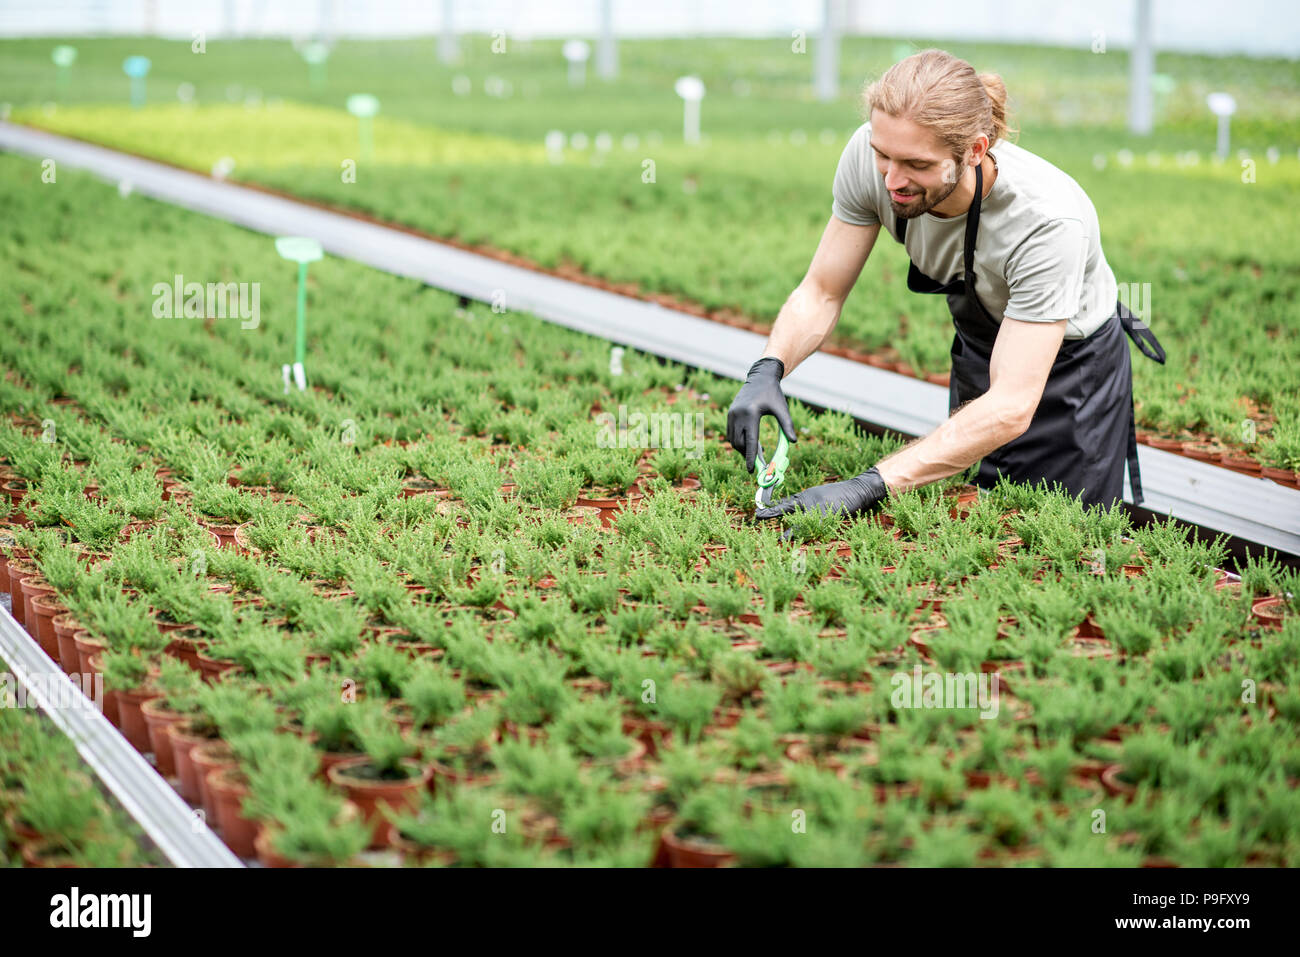 Worker with plants in the greenhouse - Stock Image